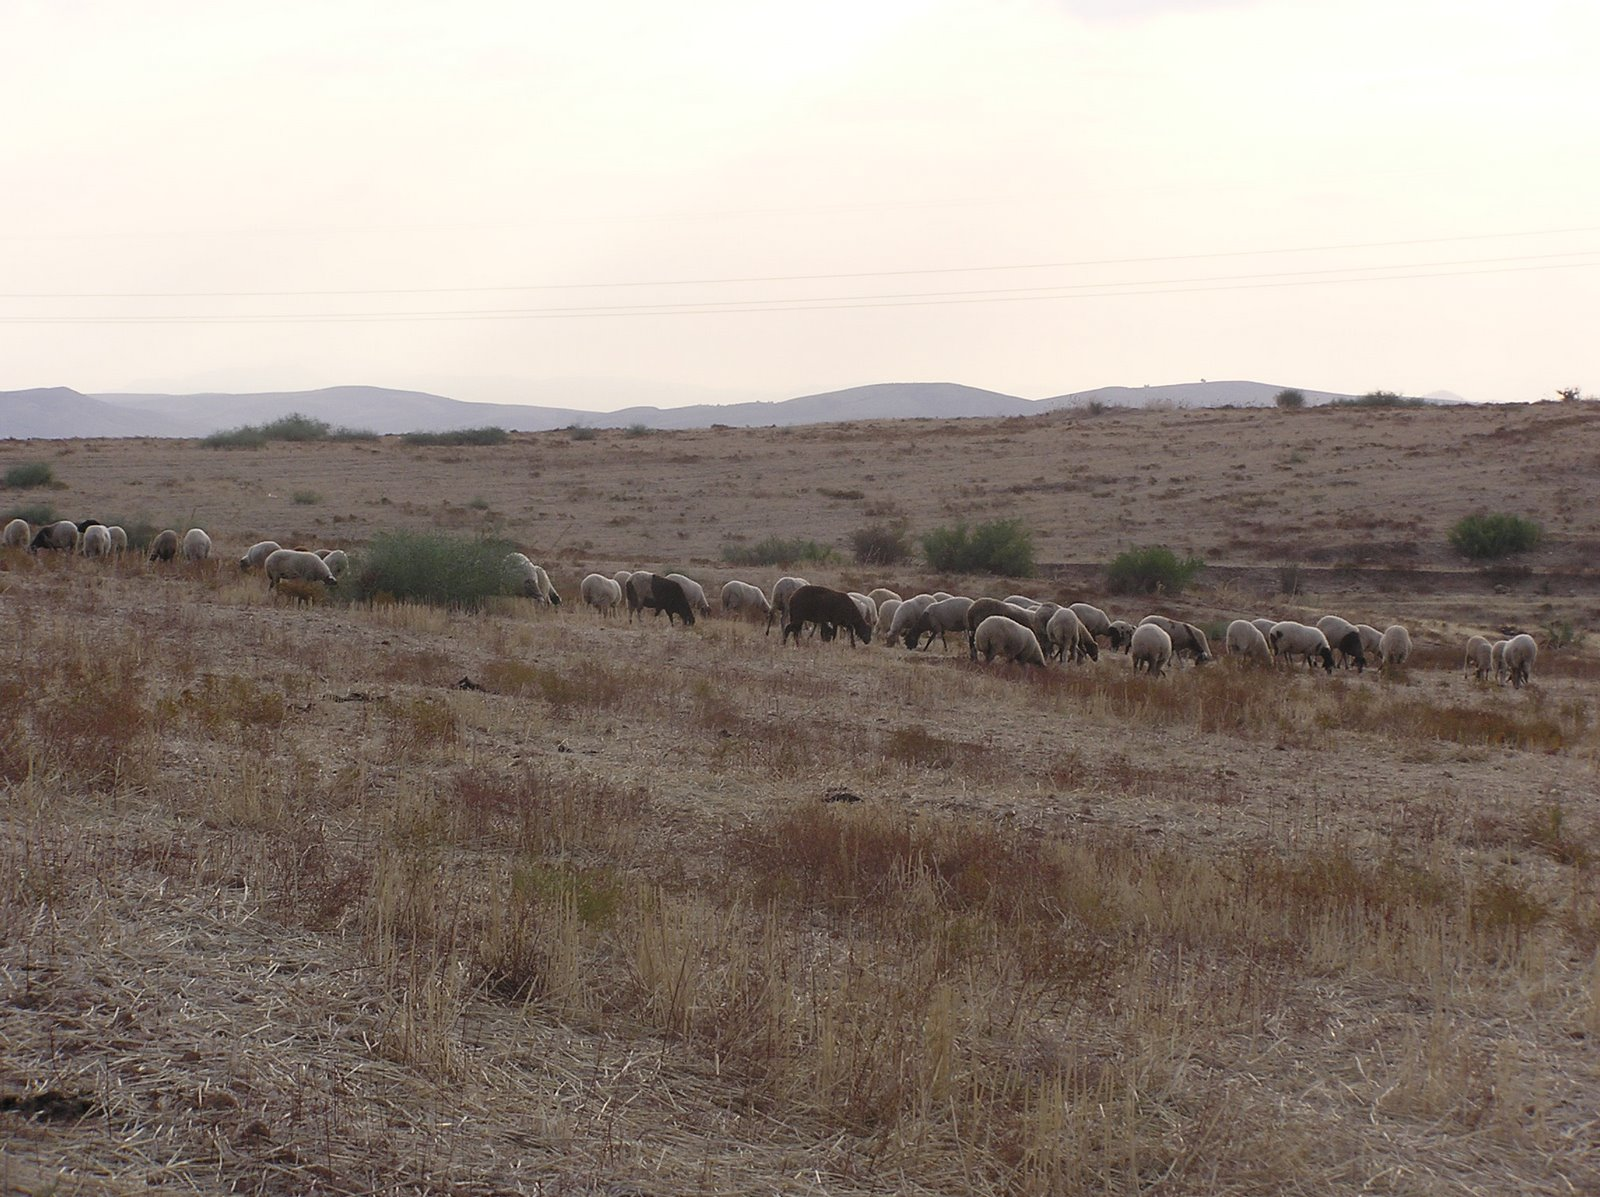 Our uncle's sheep grazing on a summer evening in Tunisia (photo taken in 2006)